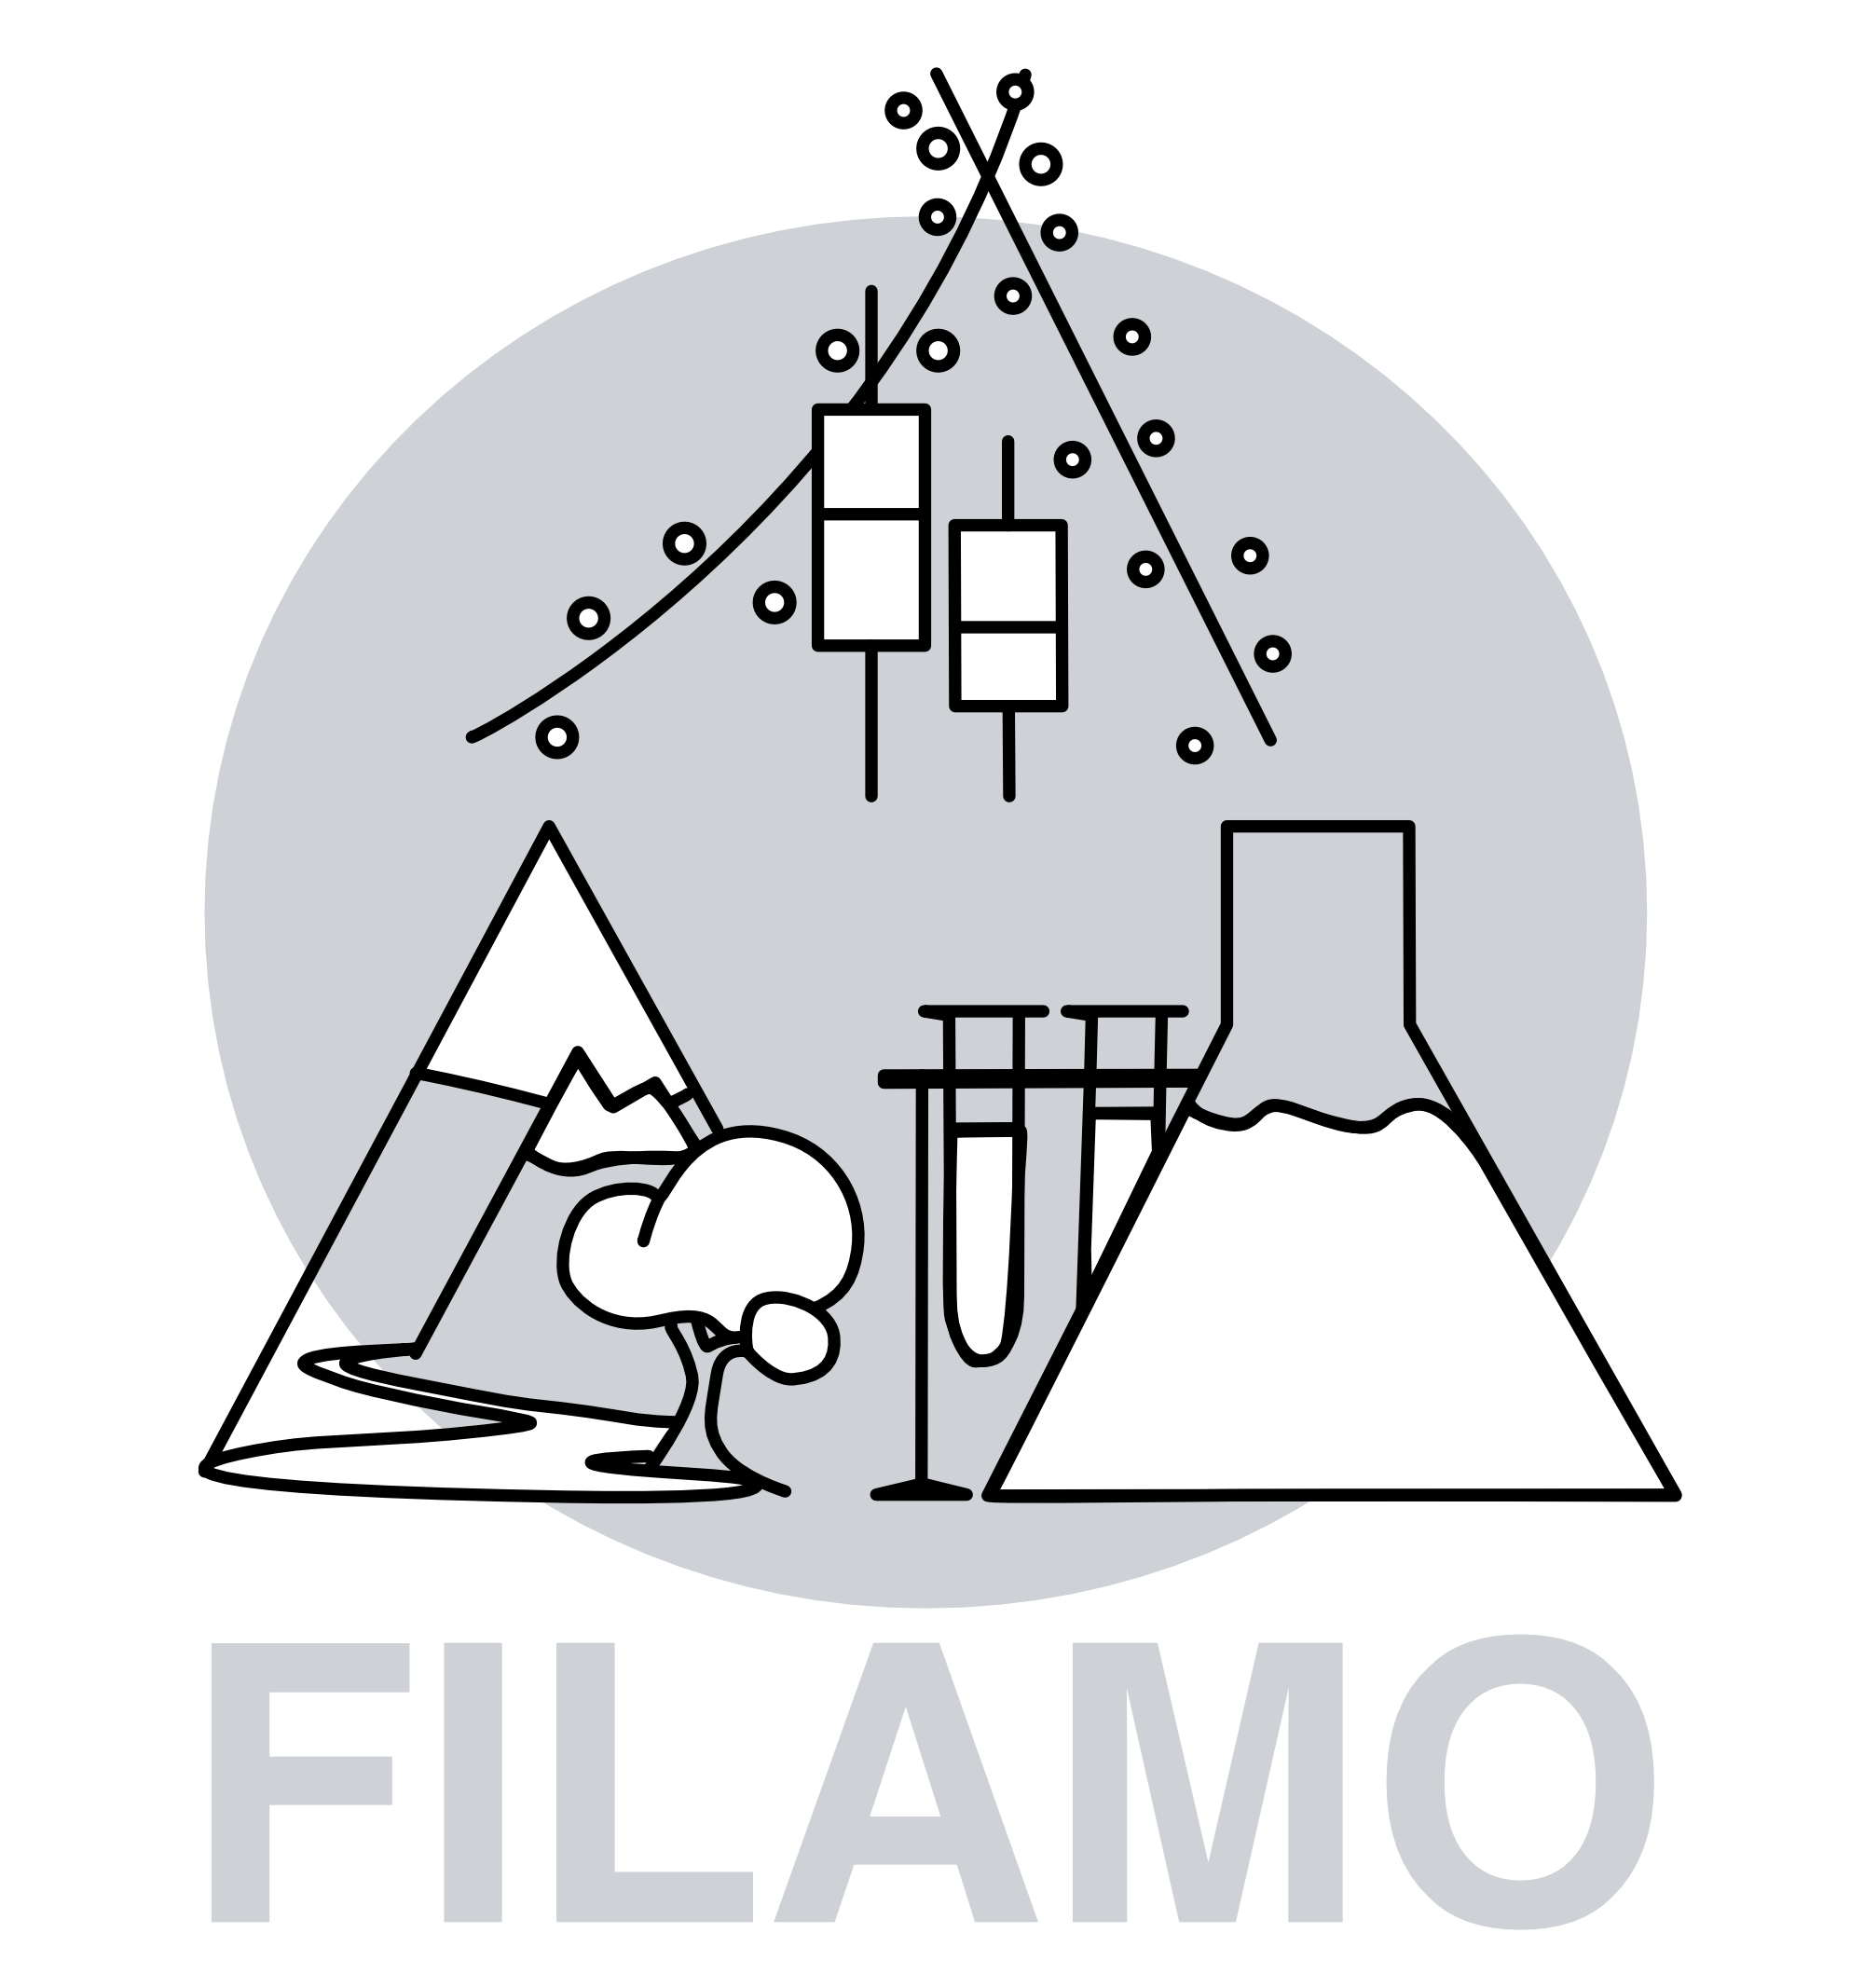 FILAMO – Connecting field, lab and modelling work in marine sciences